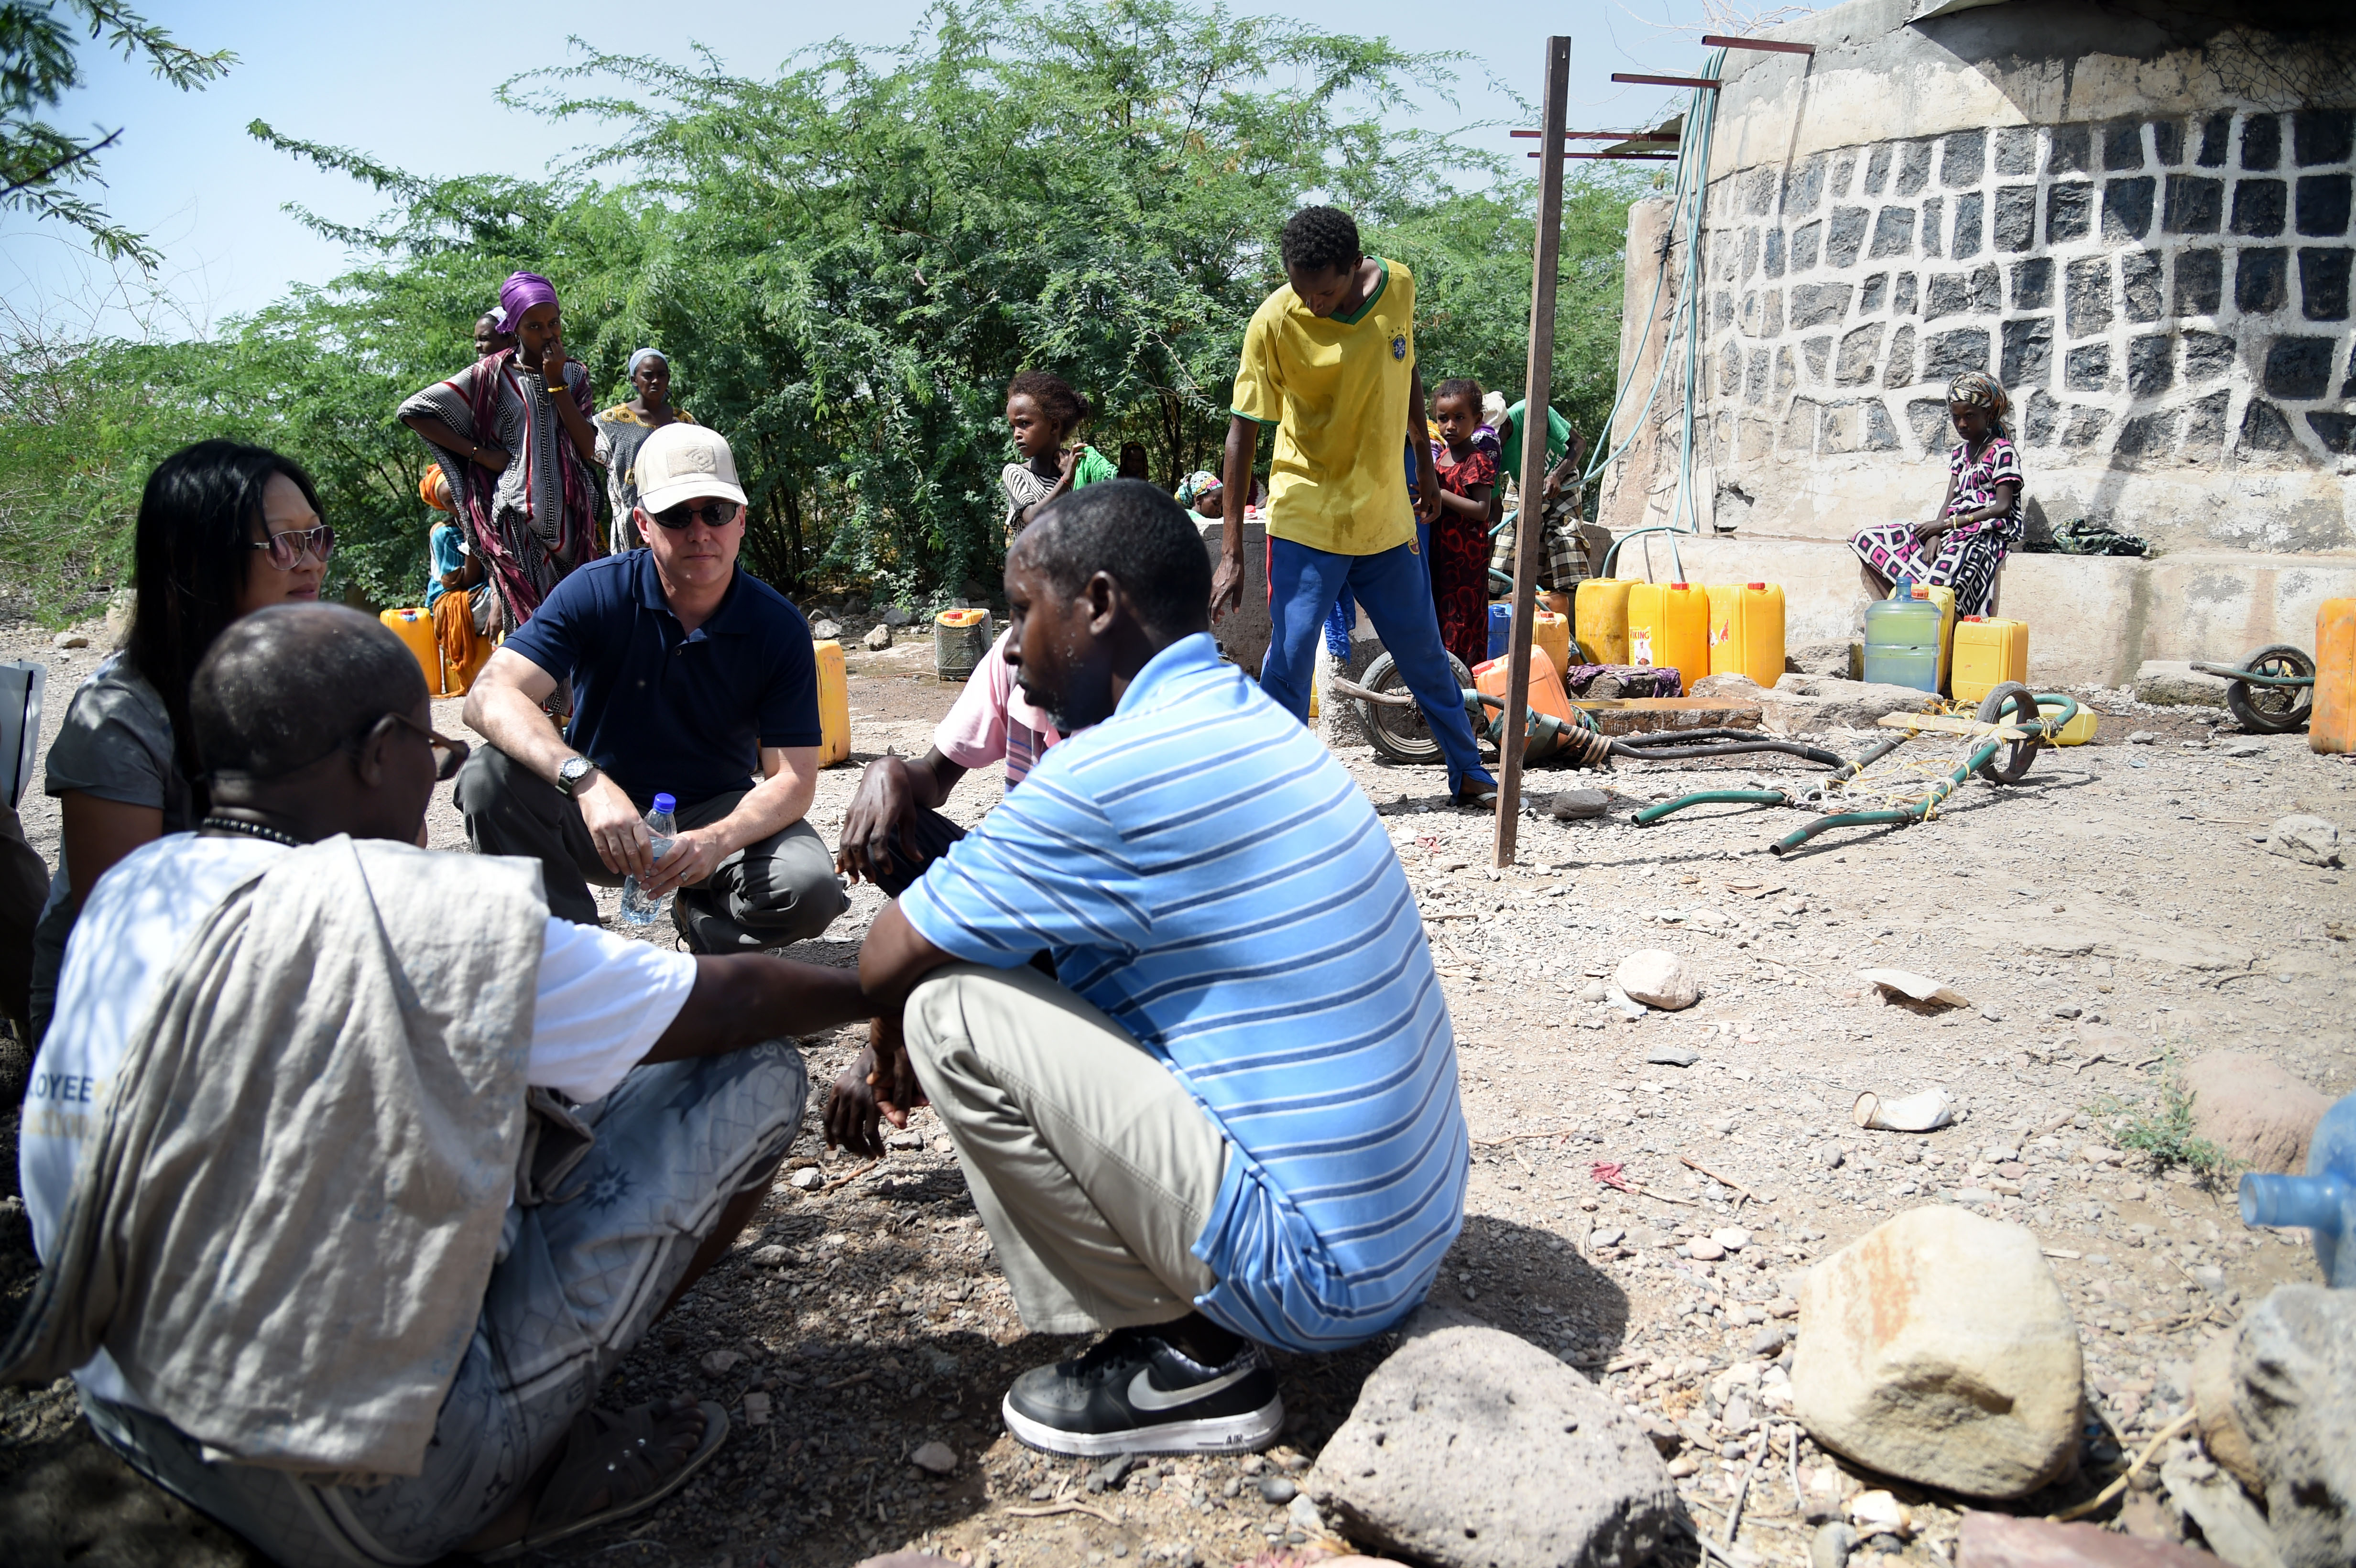 KALAF, Djibouti – Members of the Combined Joint Task Force-Horn of Africa J44 Force Engineers met with village elders to determine what improvements needed to be made to the community water cistern and well, May 17, 2016, in Kalaf, Djibouti. U.S. Navy Cmdr. Chris Myers and Lt. Trang Tieu, CJTF-HOA J44 Force Engineers, and Abdi Ali, translator and guide, talked with the village elders and measured the water level in the well to help determine the community needs. (U.S. Air Force photo by Staff Sgt. Tiffany DeNault)